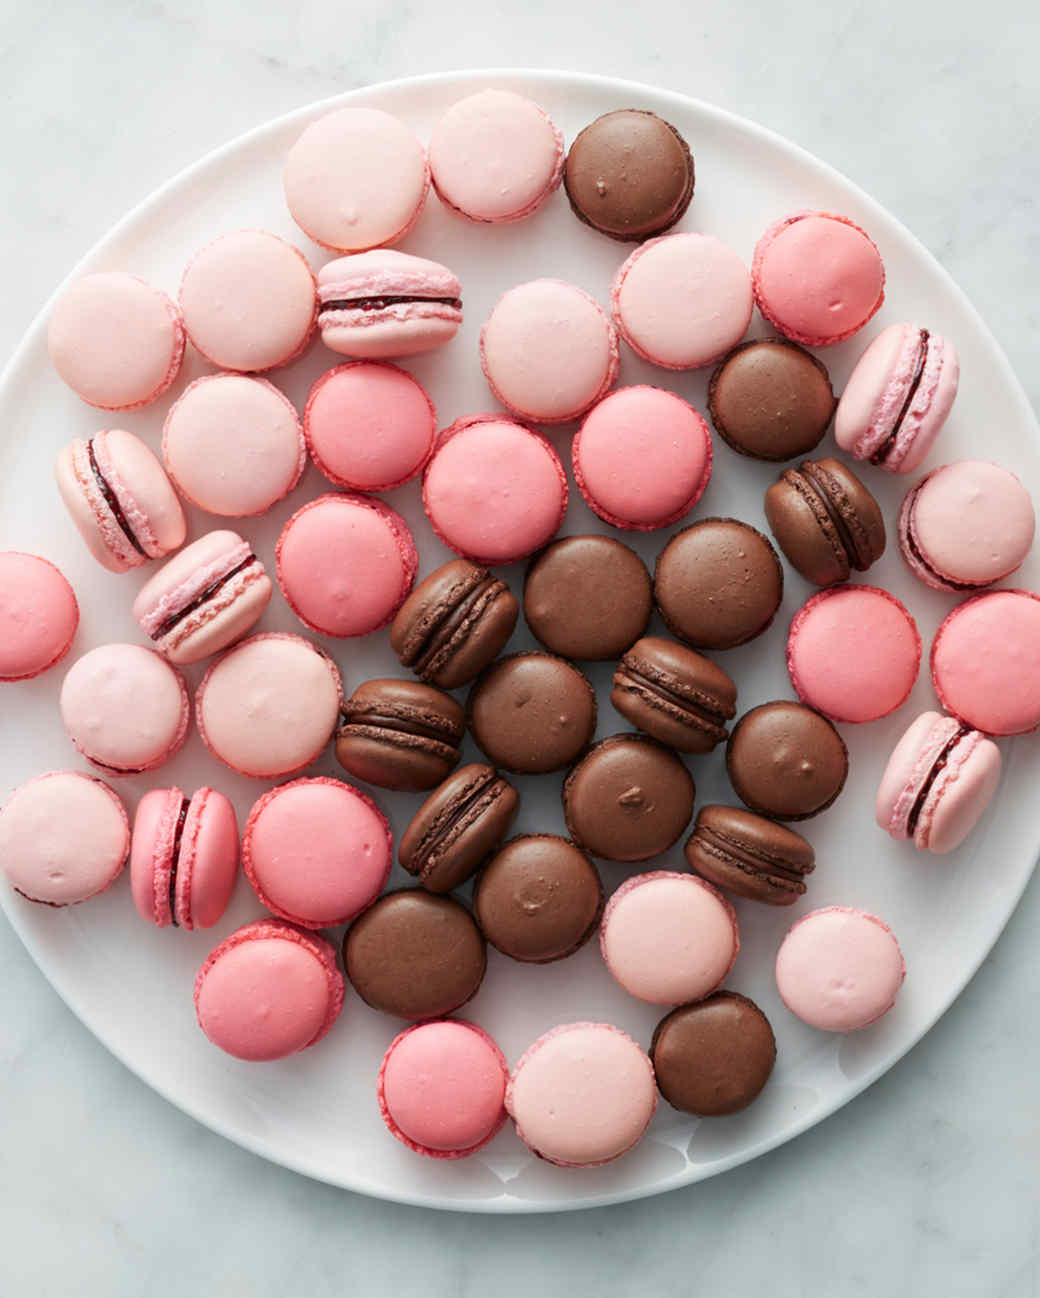 martha-bakes-french-macarons-cropped-235-d110936-0414.jpg